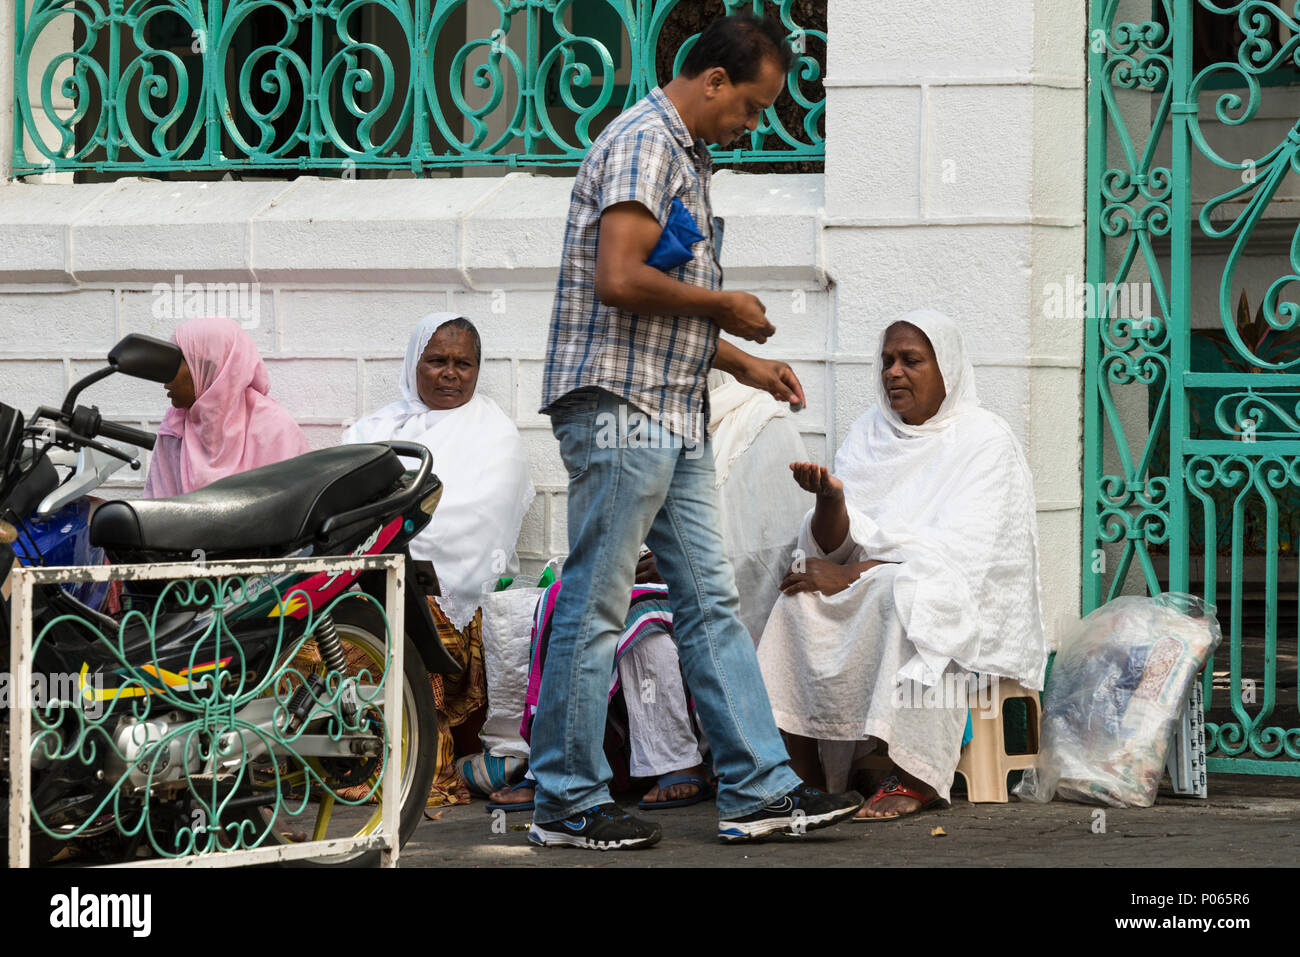 A passerby giving money to one of a group of women sitting on the street waiting for alms outside Jummah Mosque on a Friday, Port Louis,  Mauritius - Stock Image